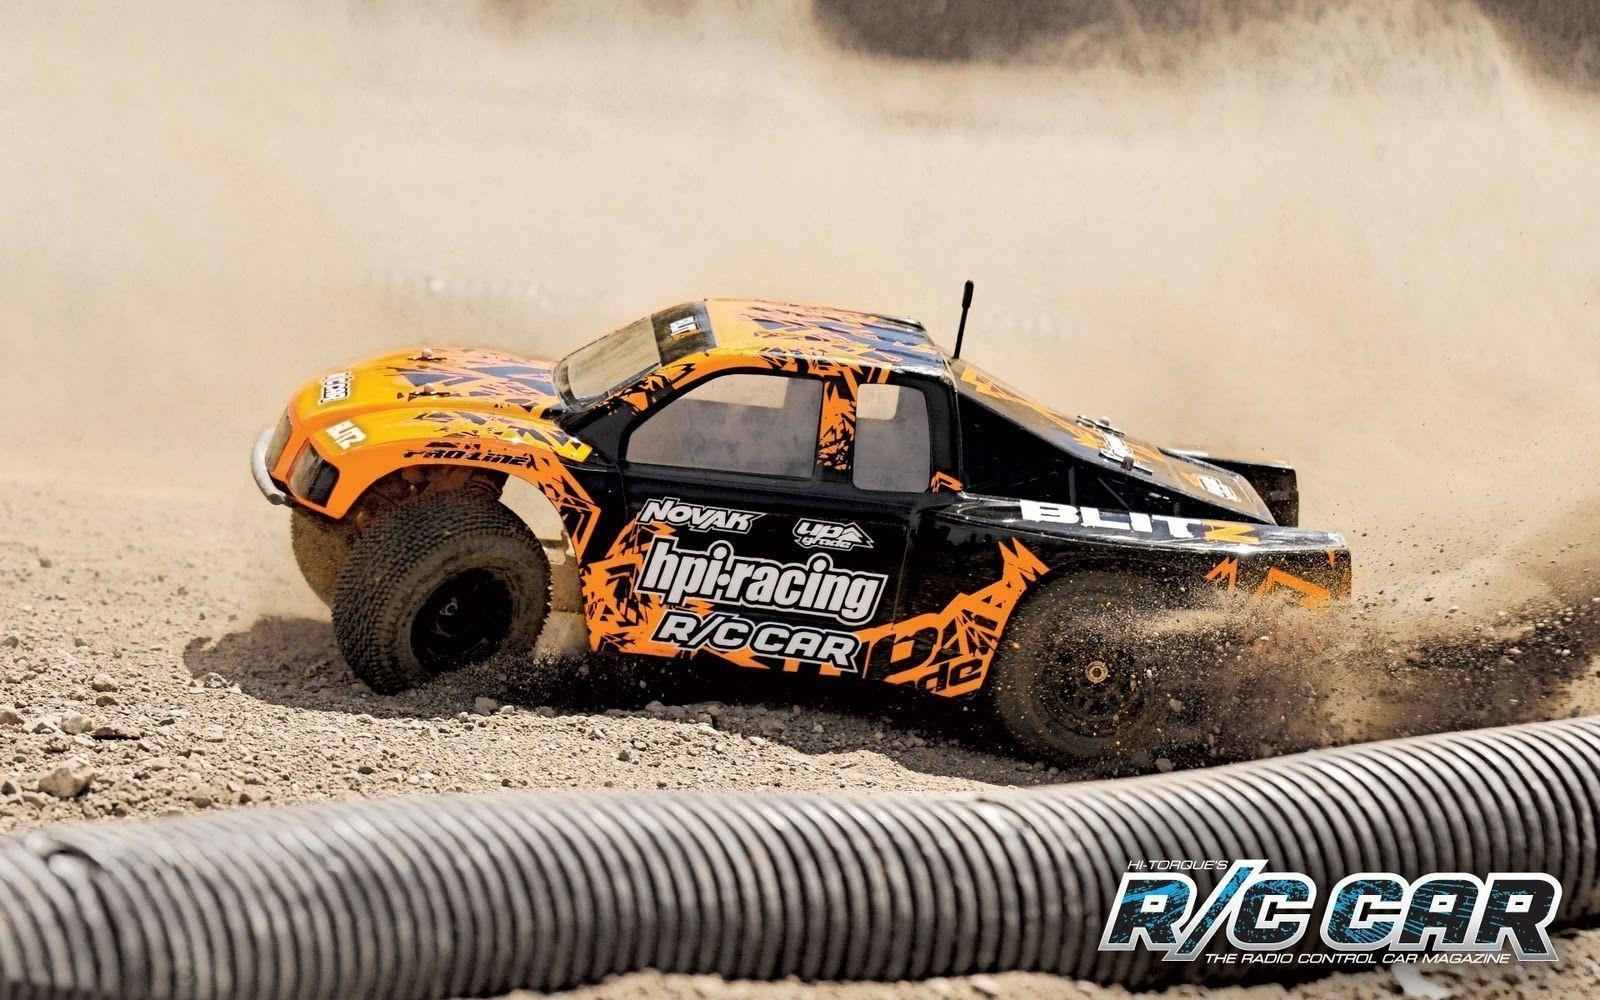 rc car wallpapers - wallpaper cave